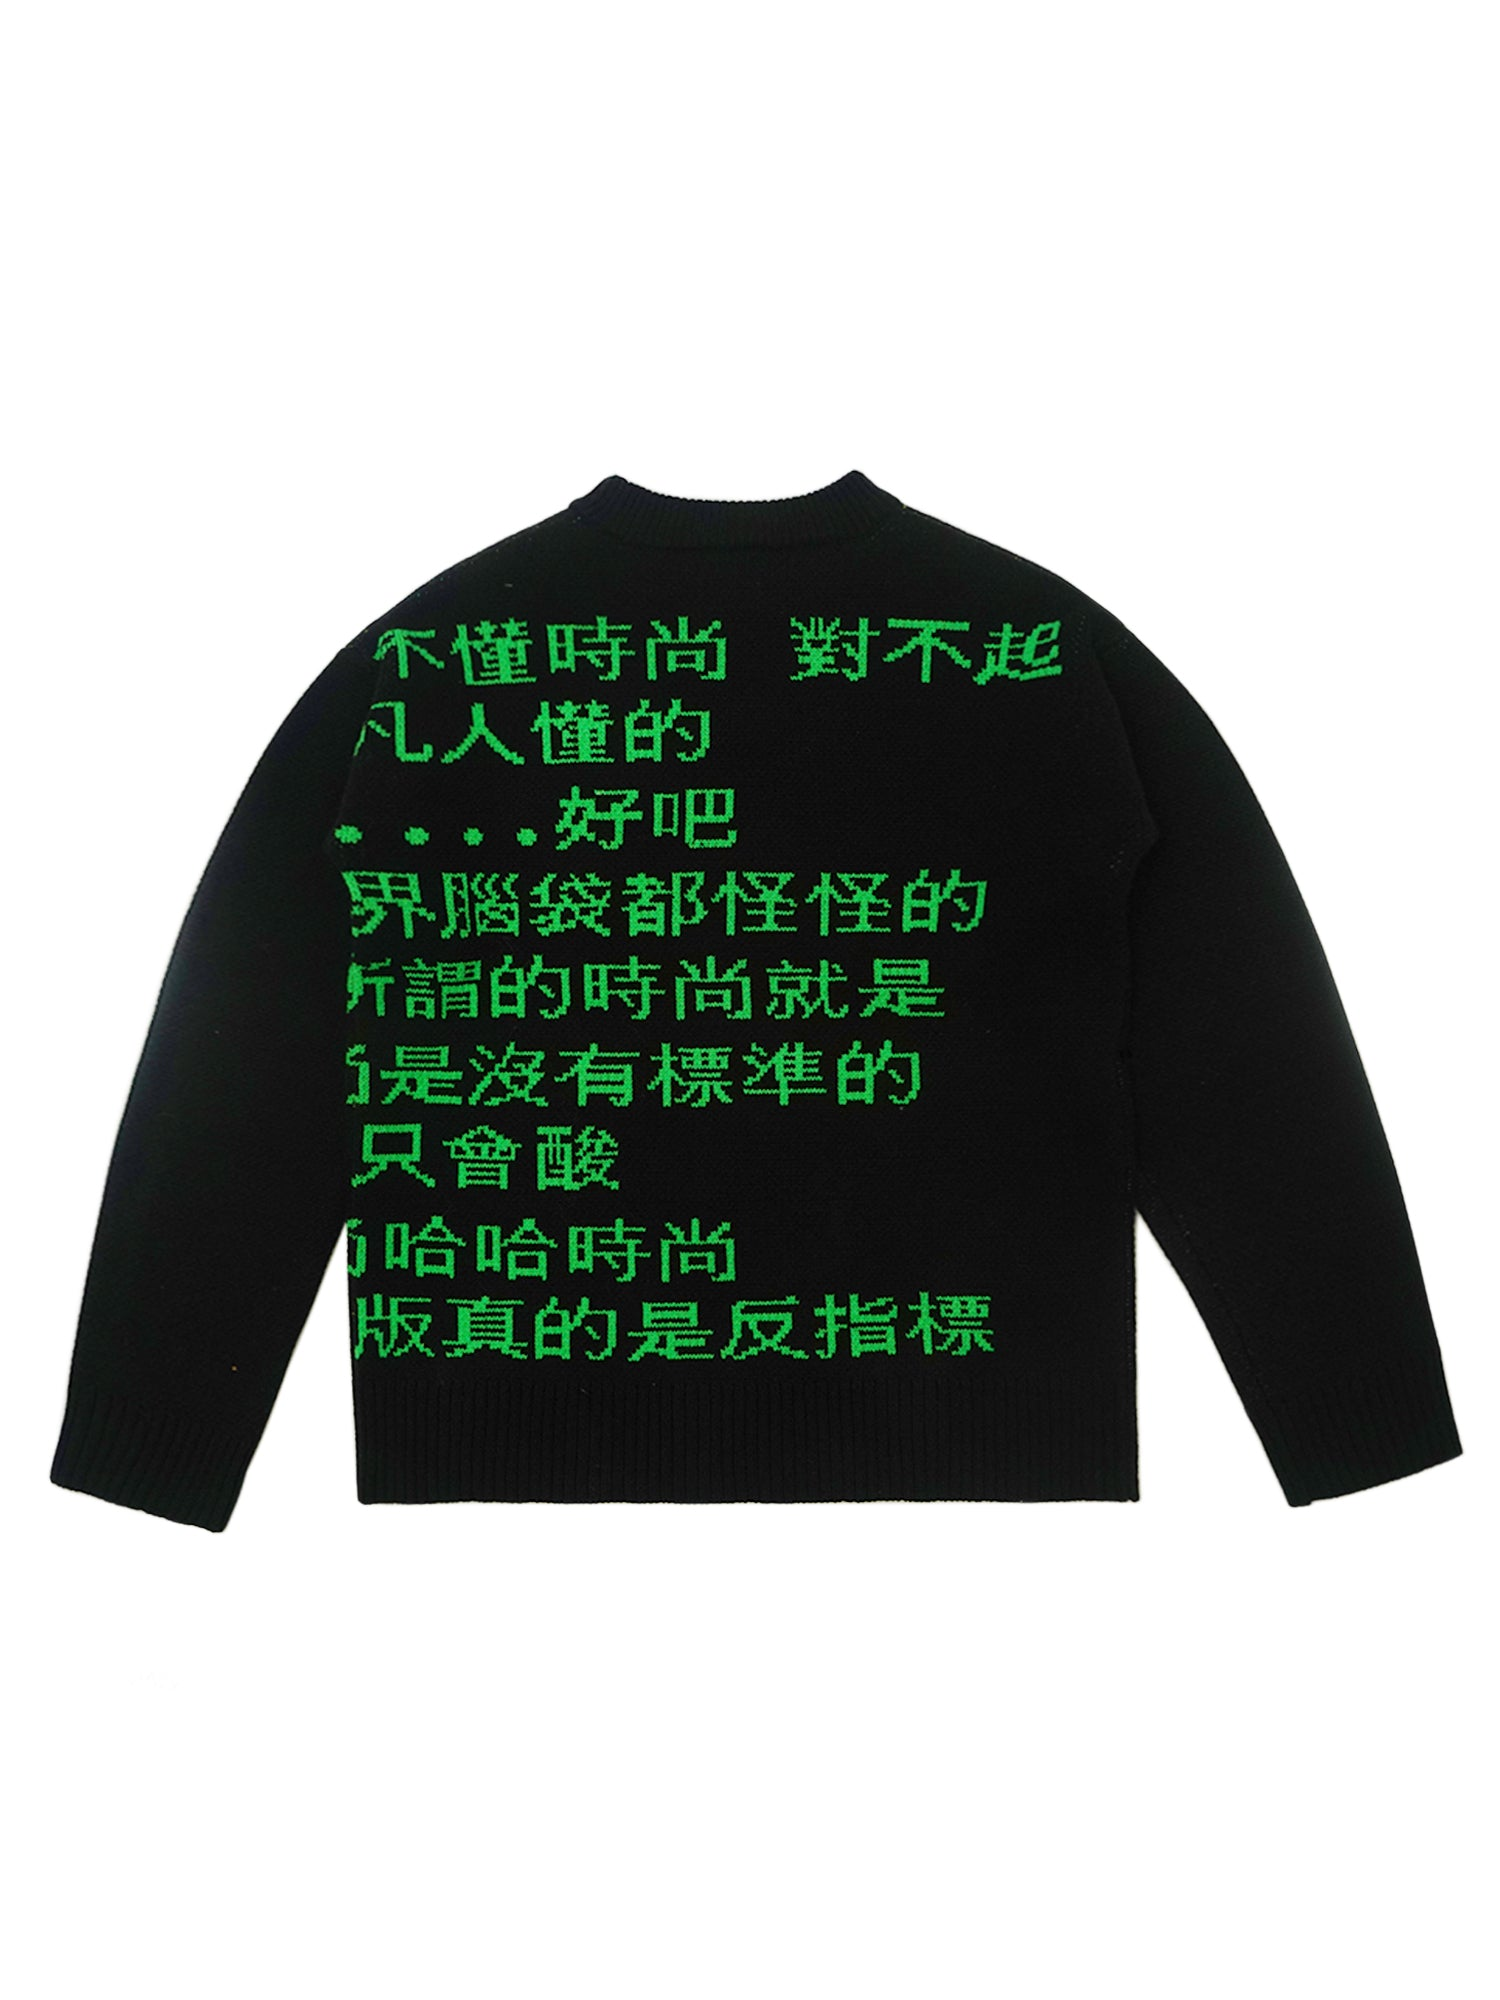 MESSAGE ON SOCIAL MEDIA SWEATER